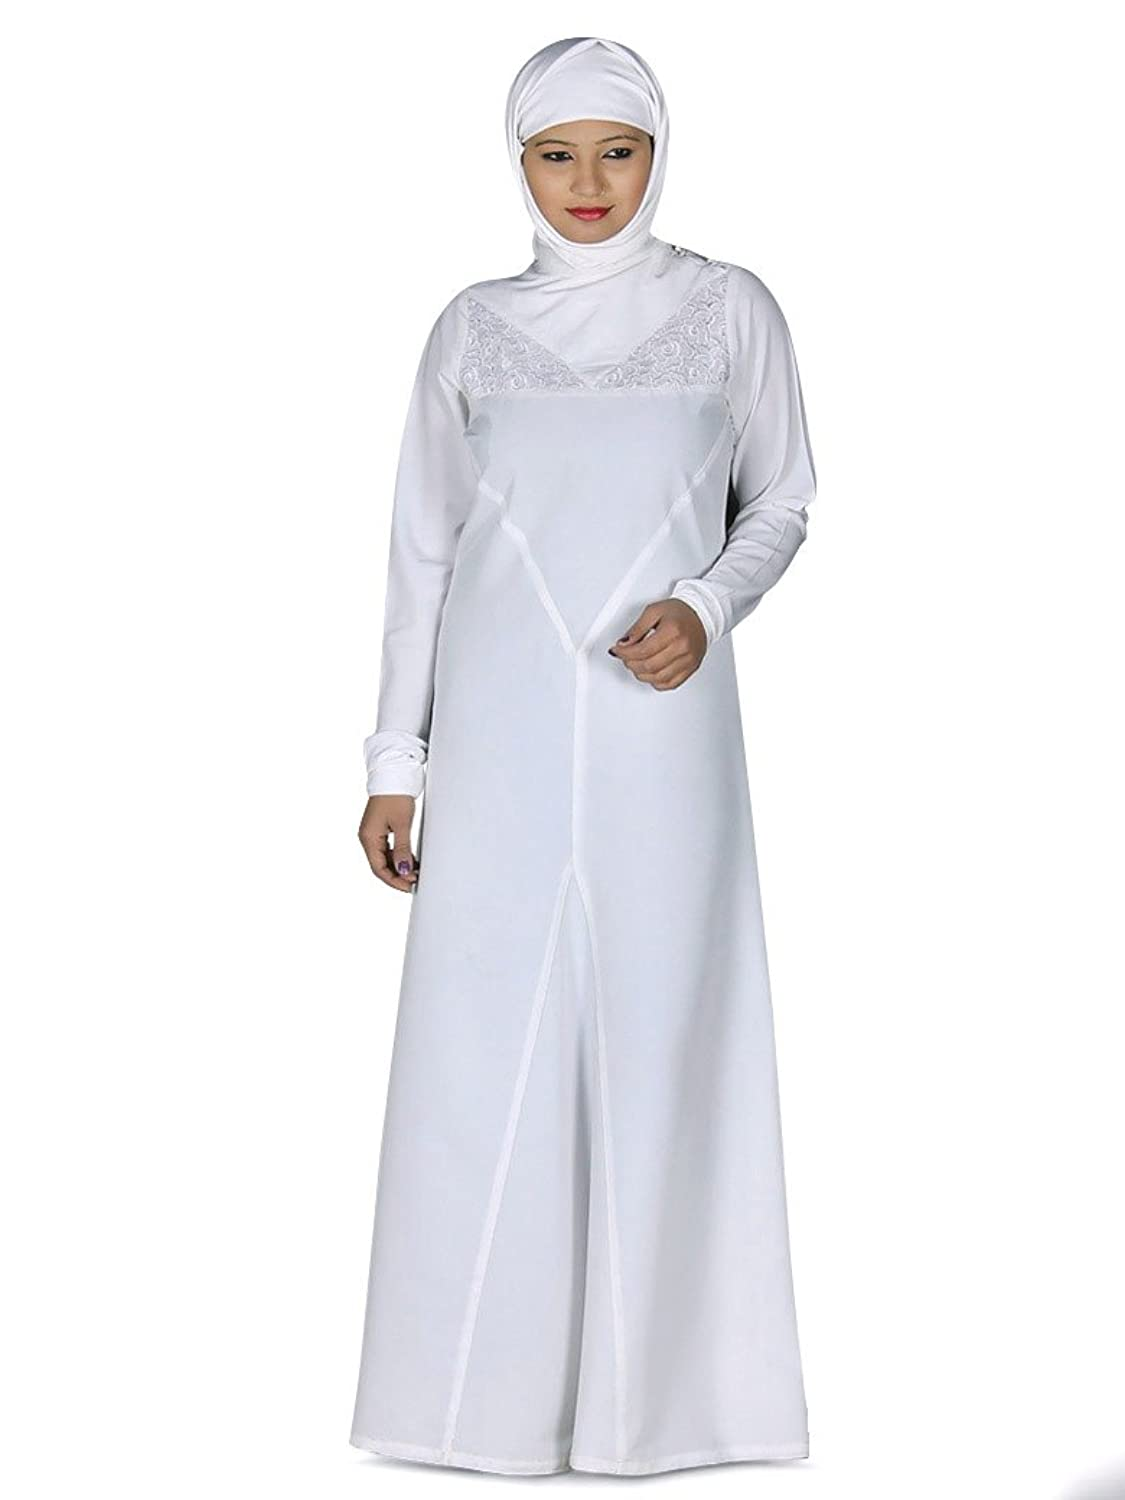 MyBatua Women's Islamic Dress Trendy Zeenat Abaya in White